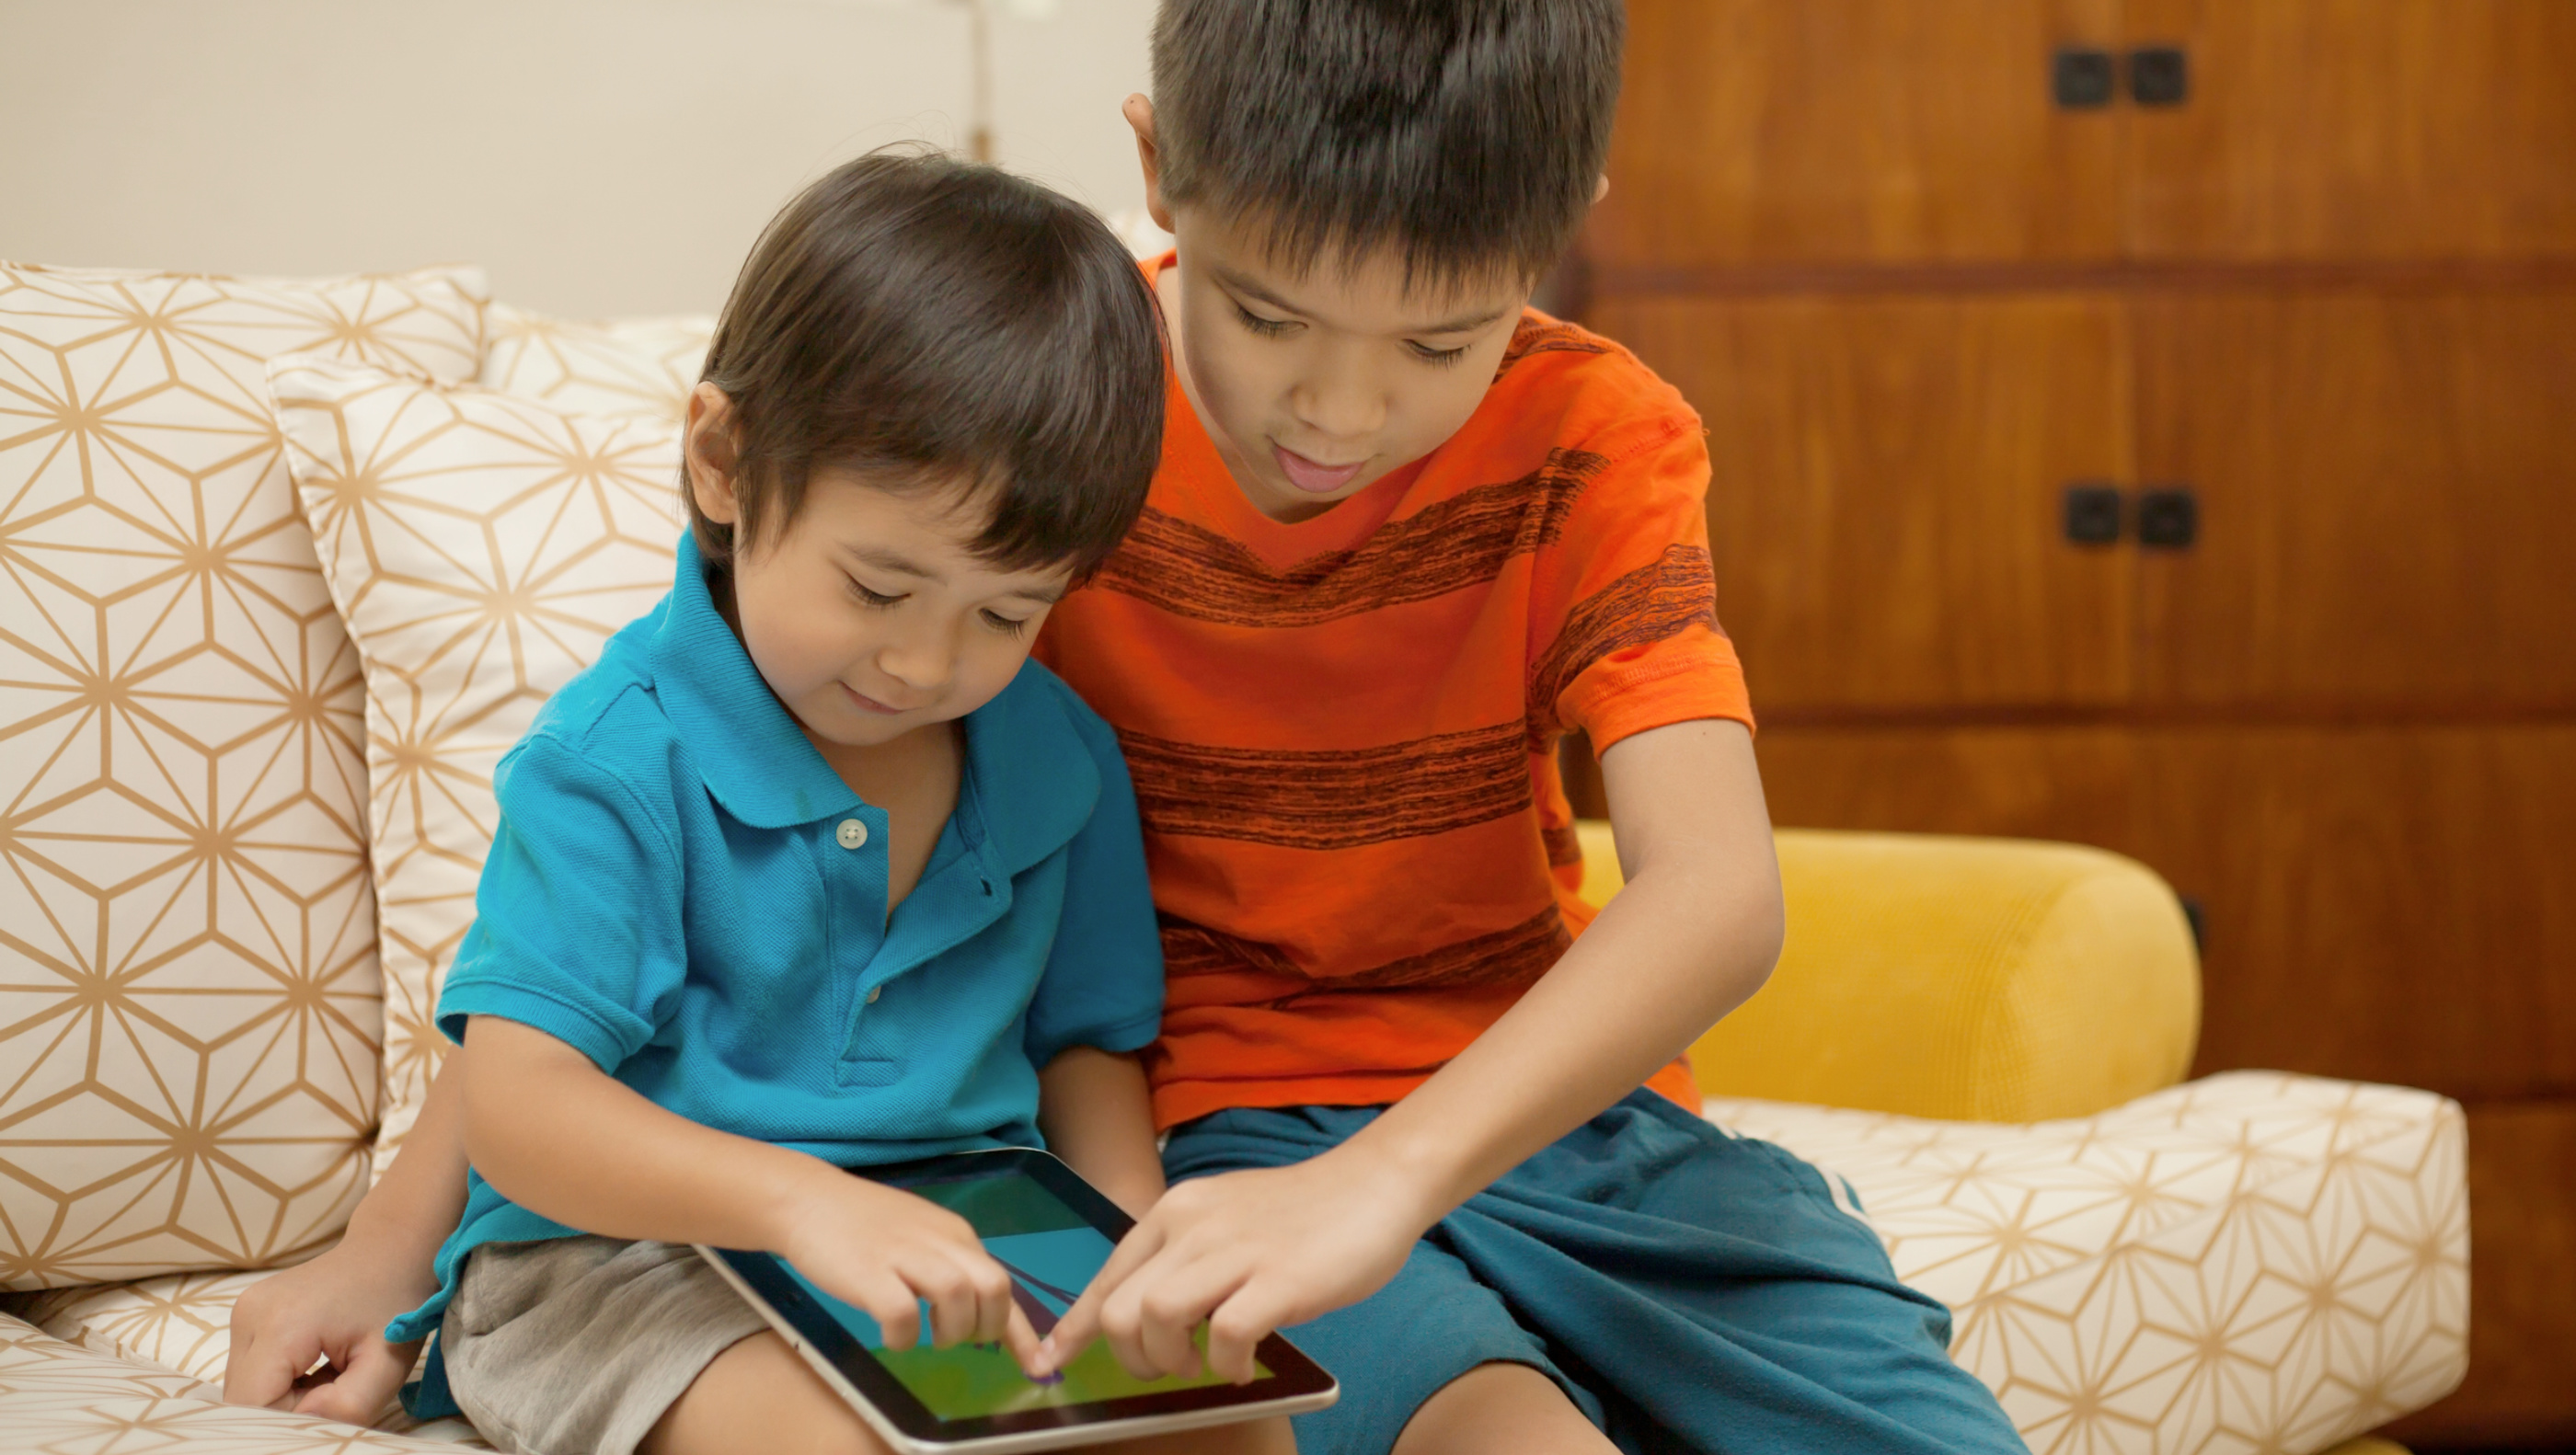 Screen Smart Families: Tips for Internet Safety at Home